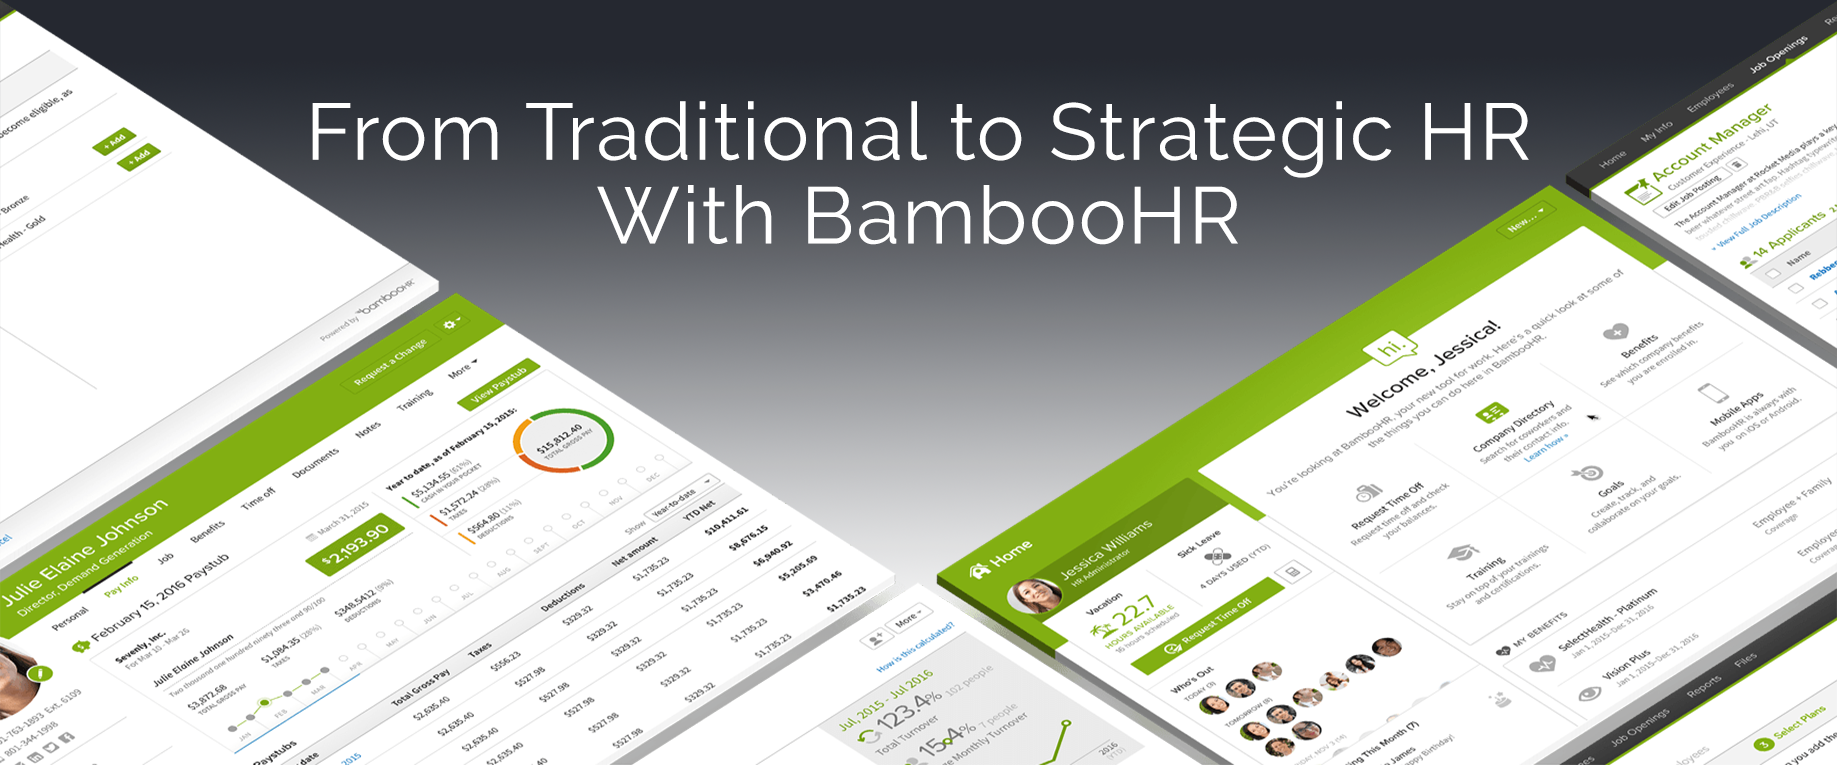 Transition from traditional to strategic HR with BambooHR